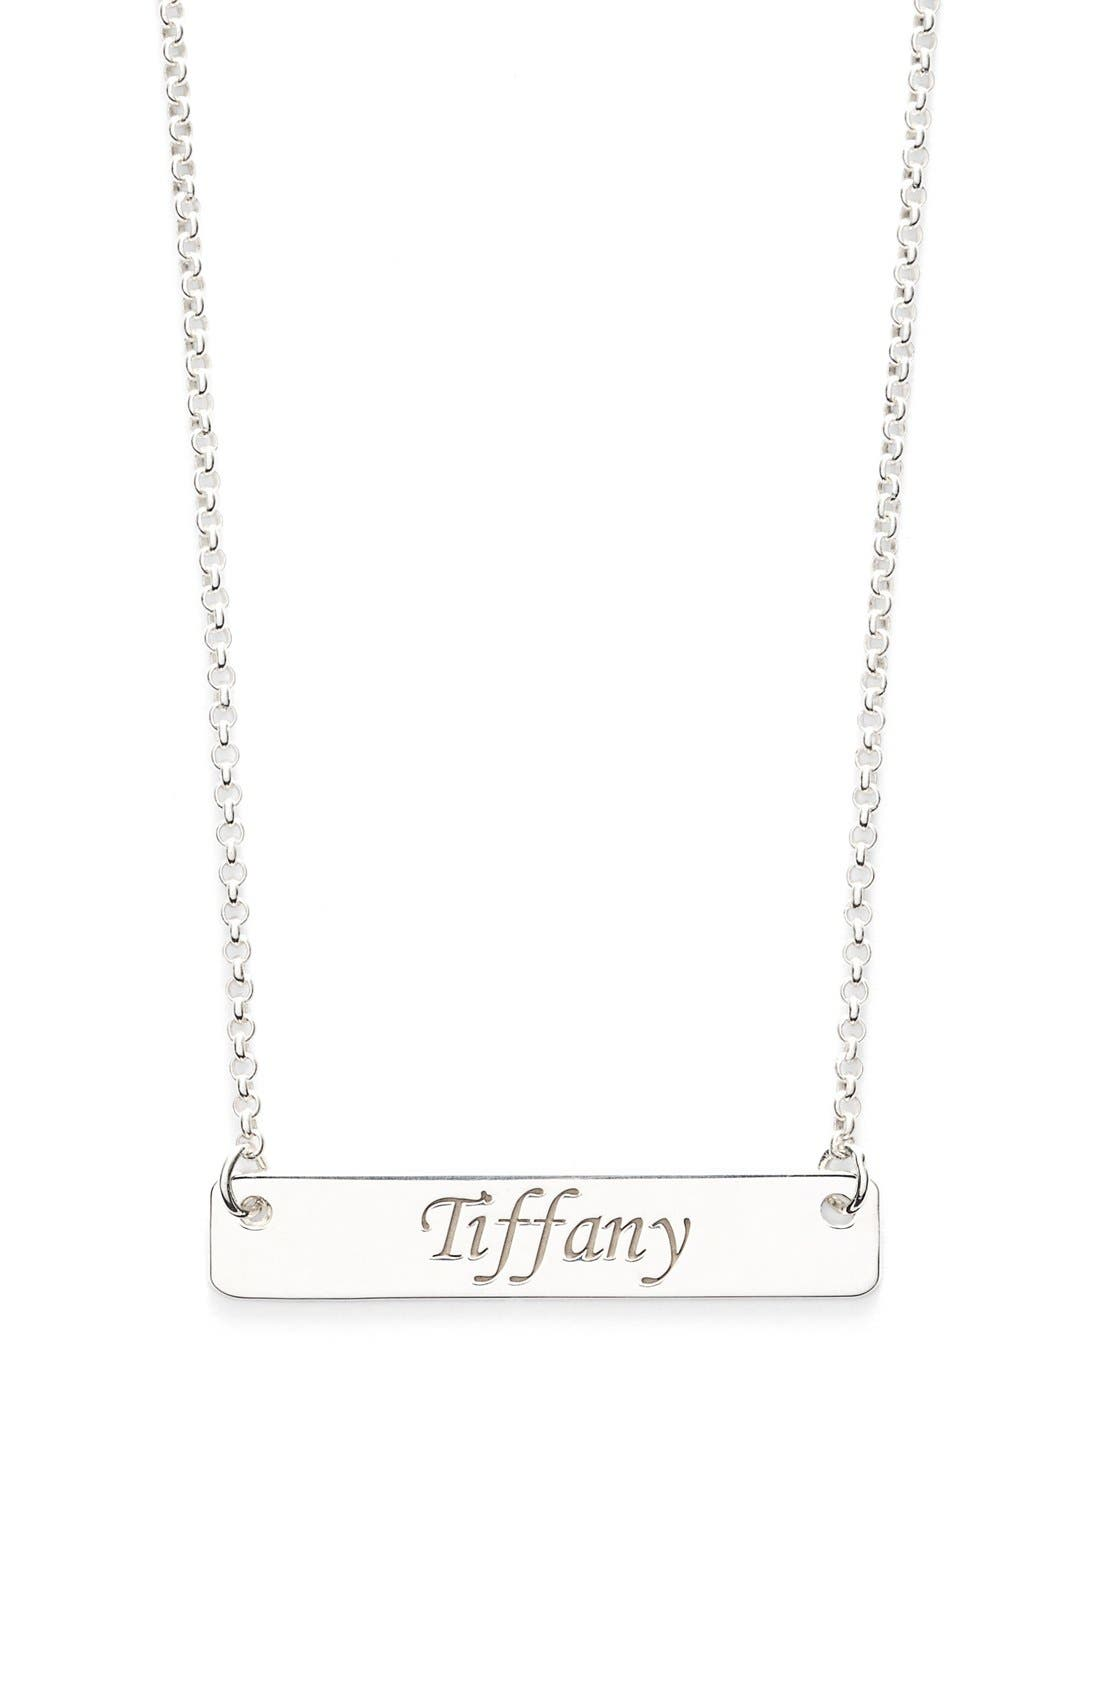 Personalized Script Bar Pendant Necklace,                             Main thumbnail 1, color,                             040